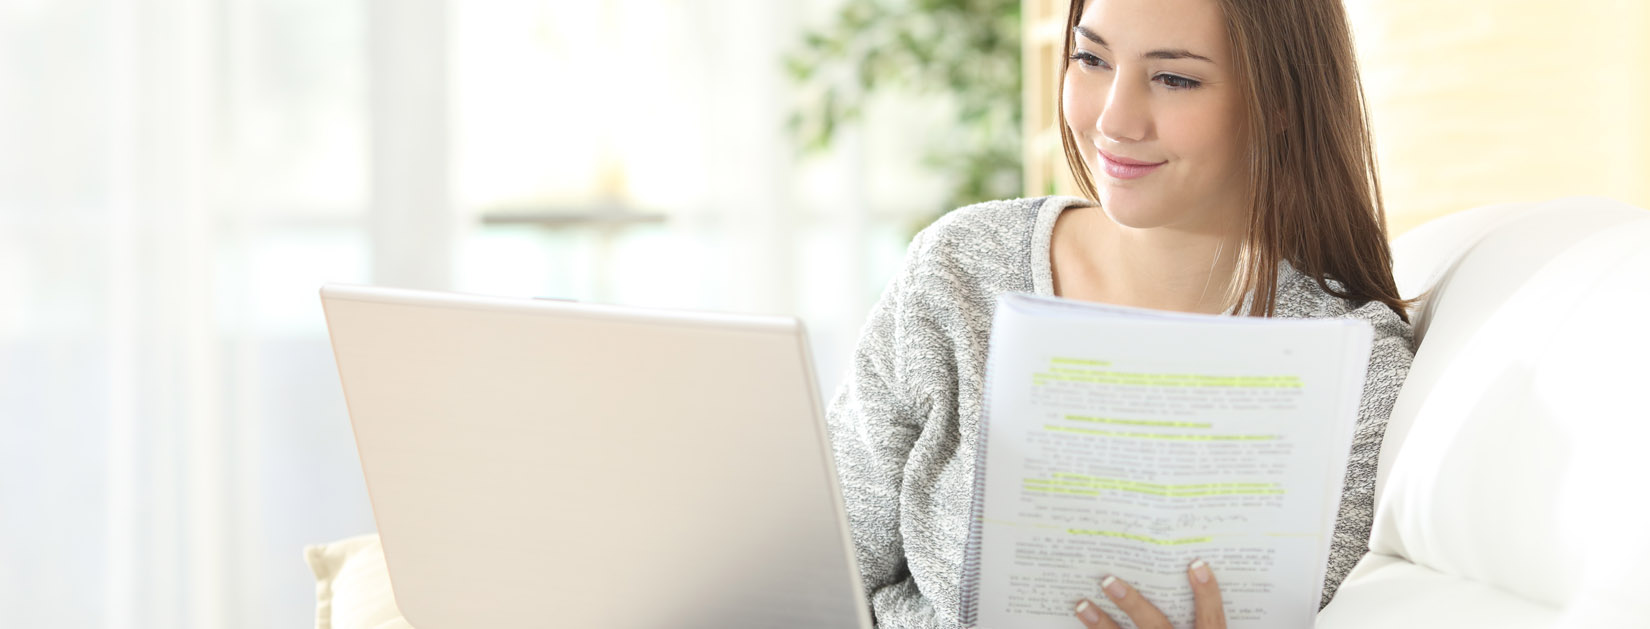 woman sitting on couch with laptop and highlighted papers taking a virtual class